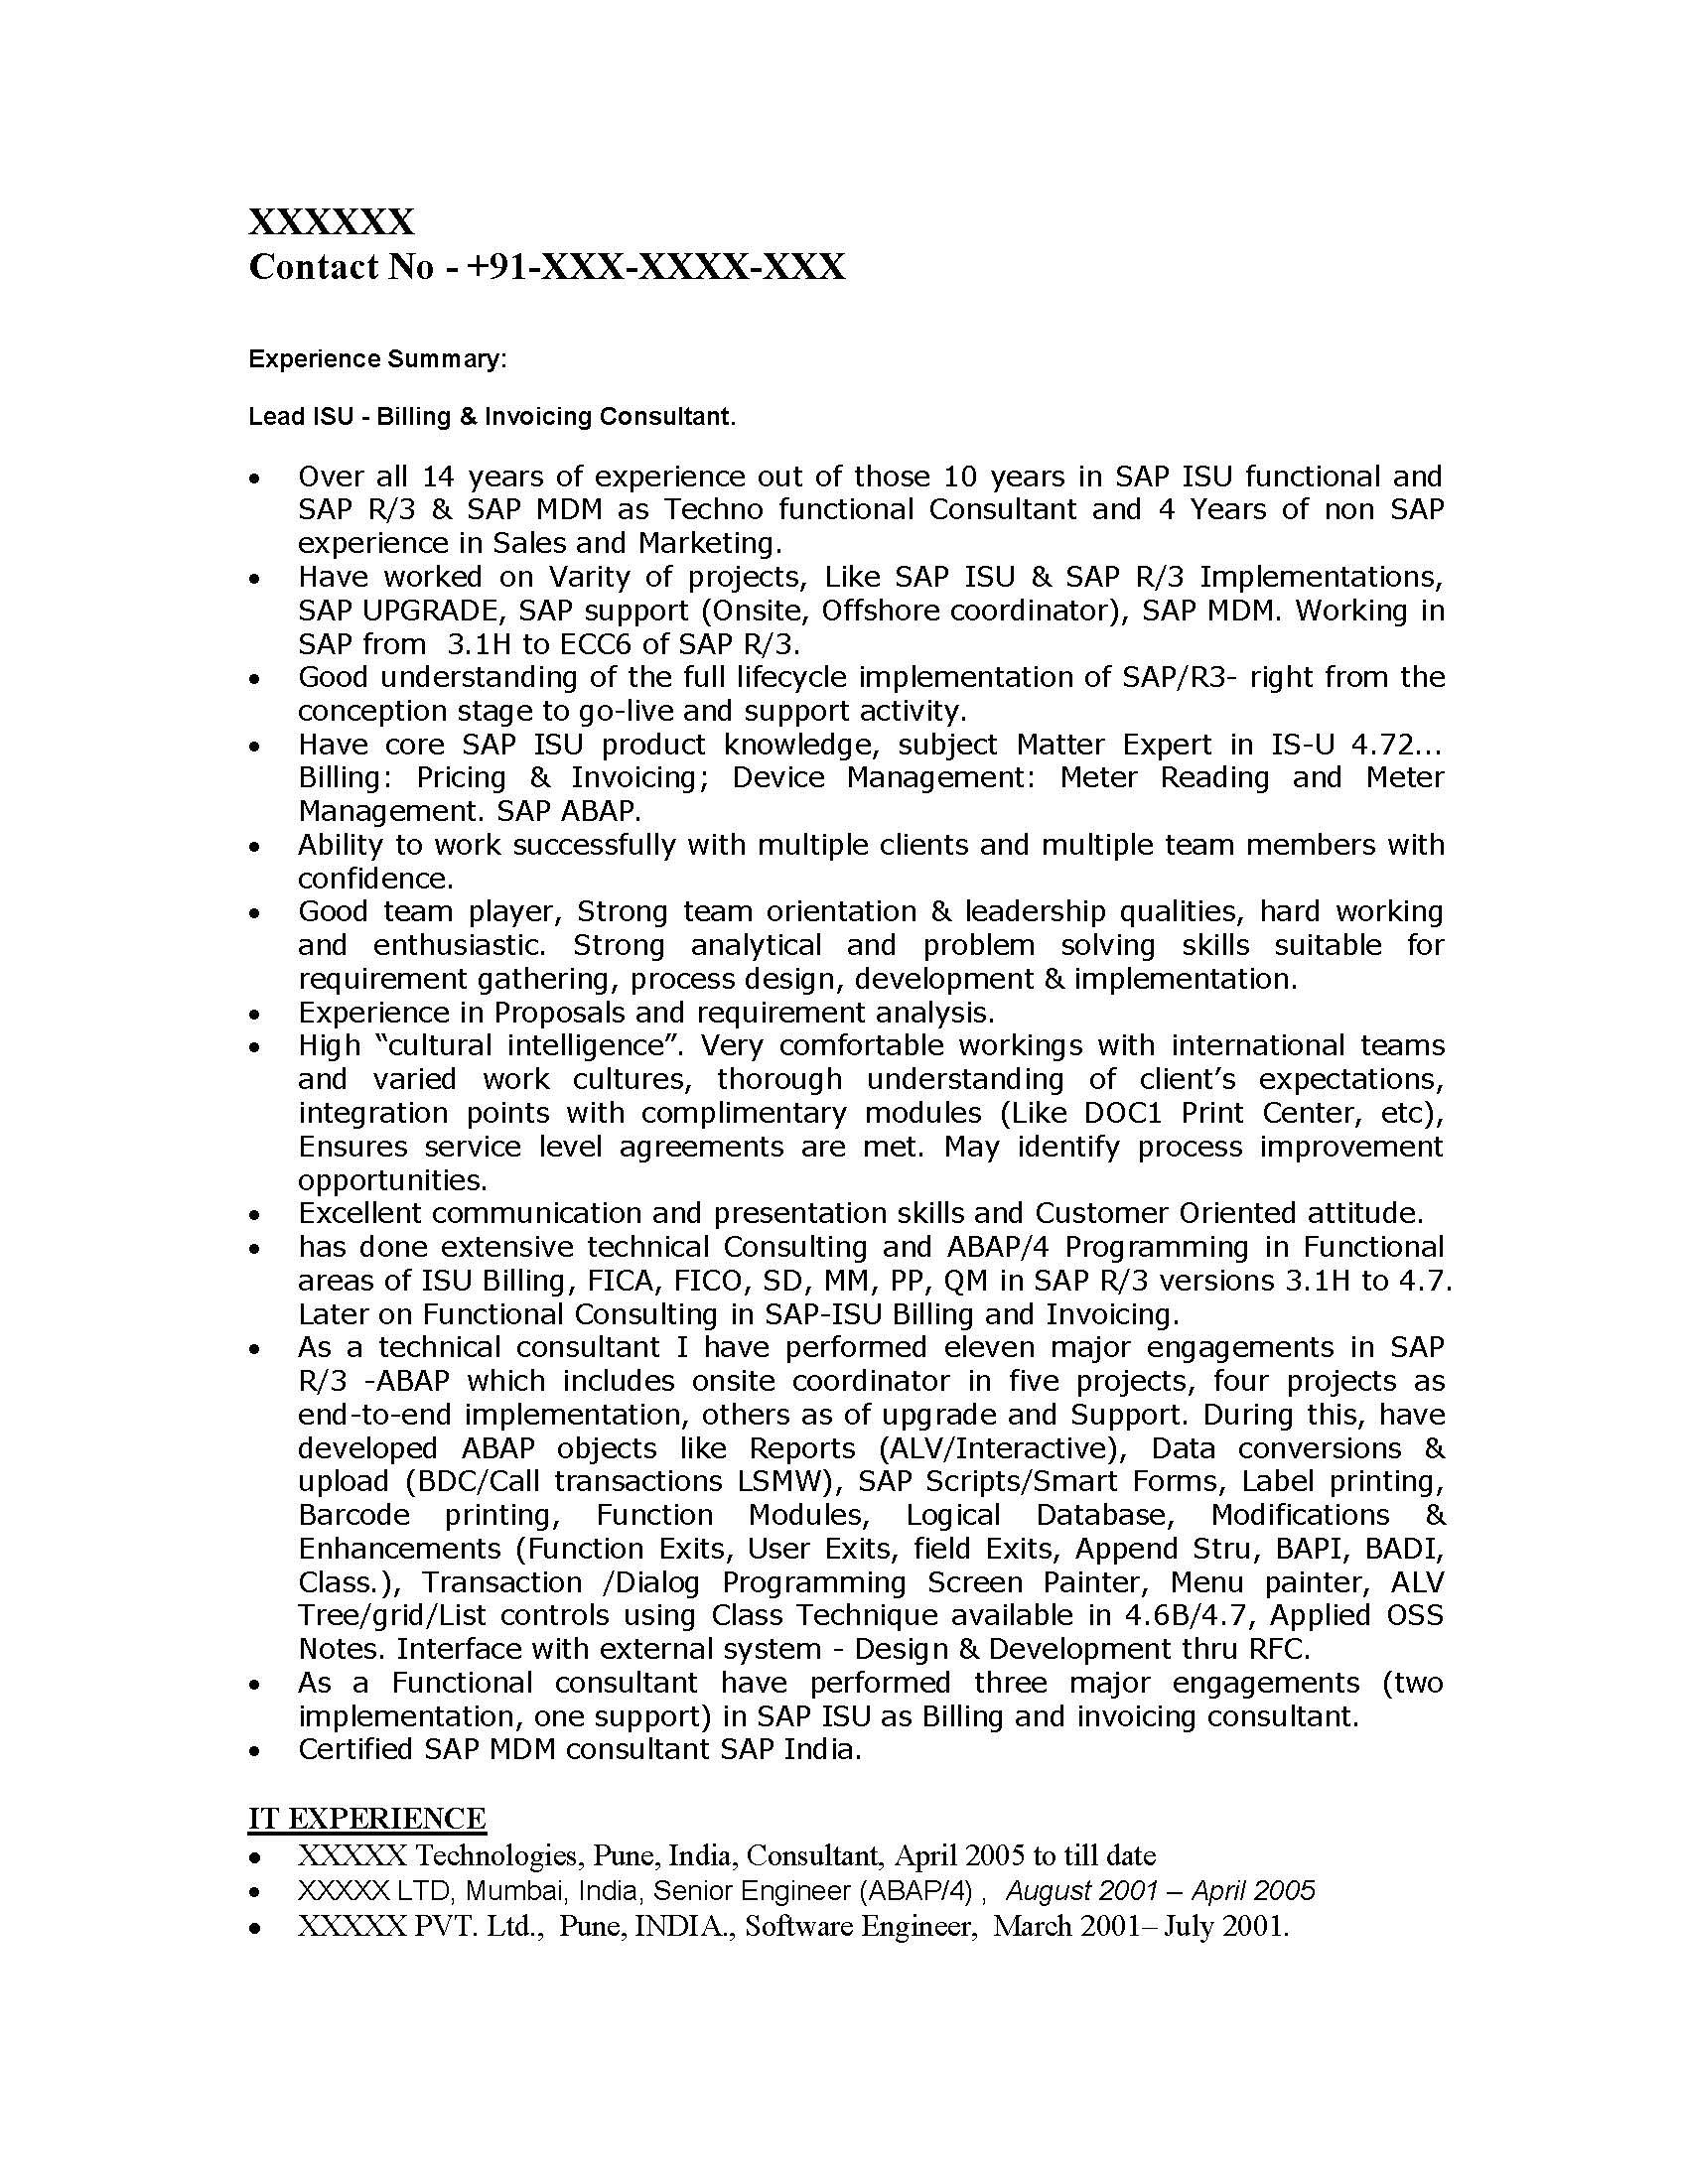 sap abap resume cover letter ccna resume sample ccna sample resume – Sap Abap Resume Sample